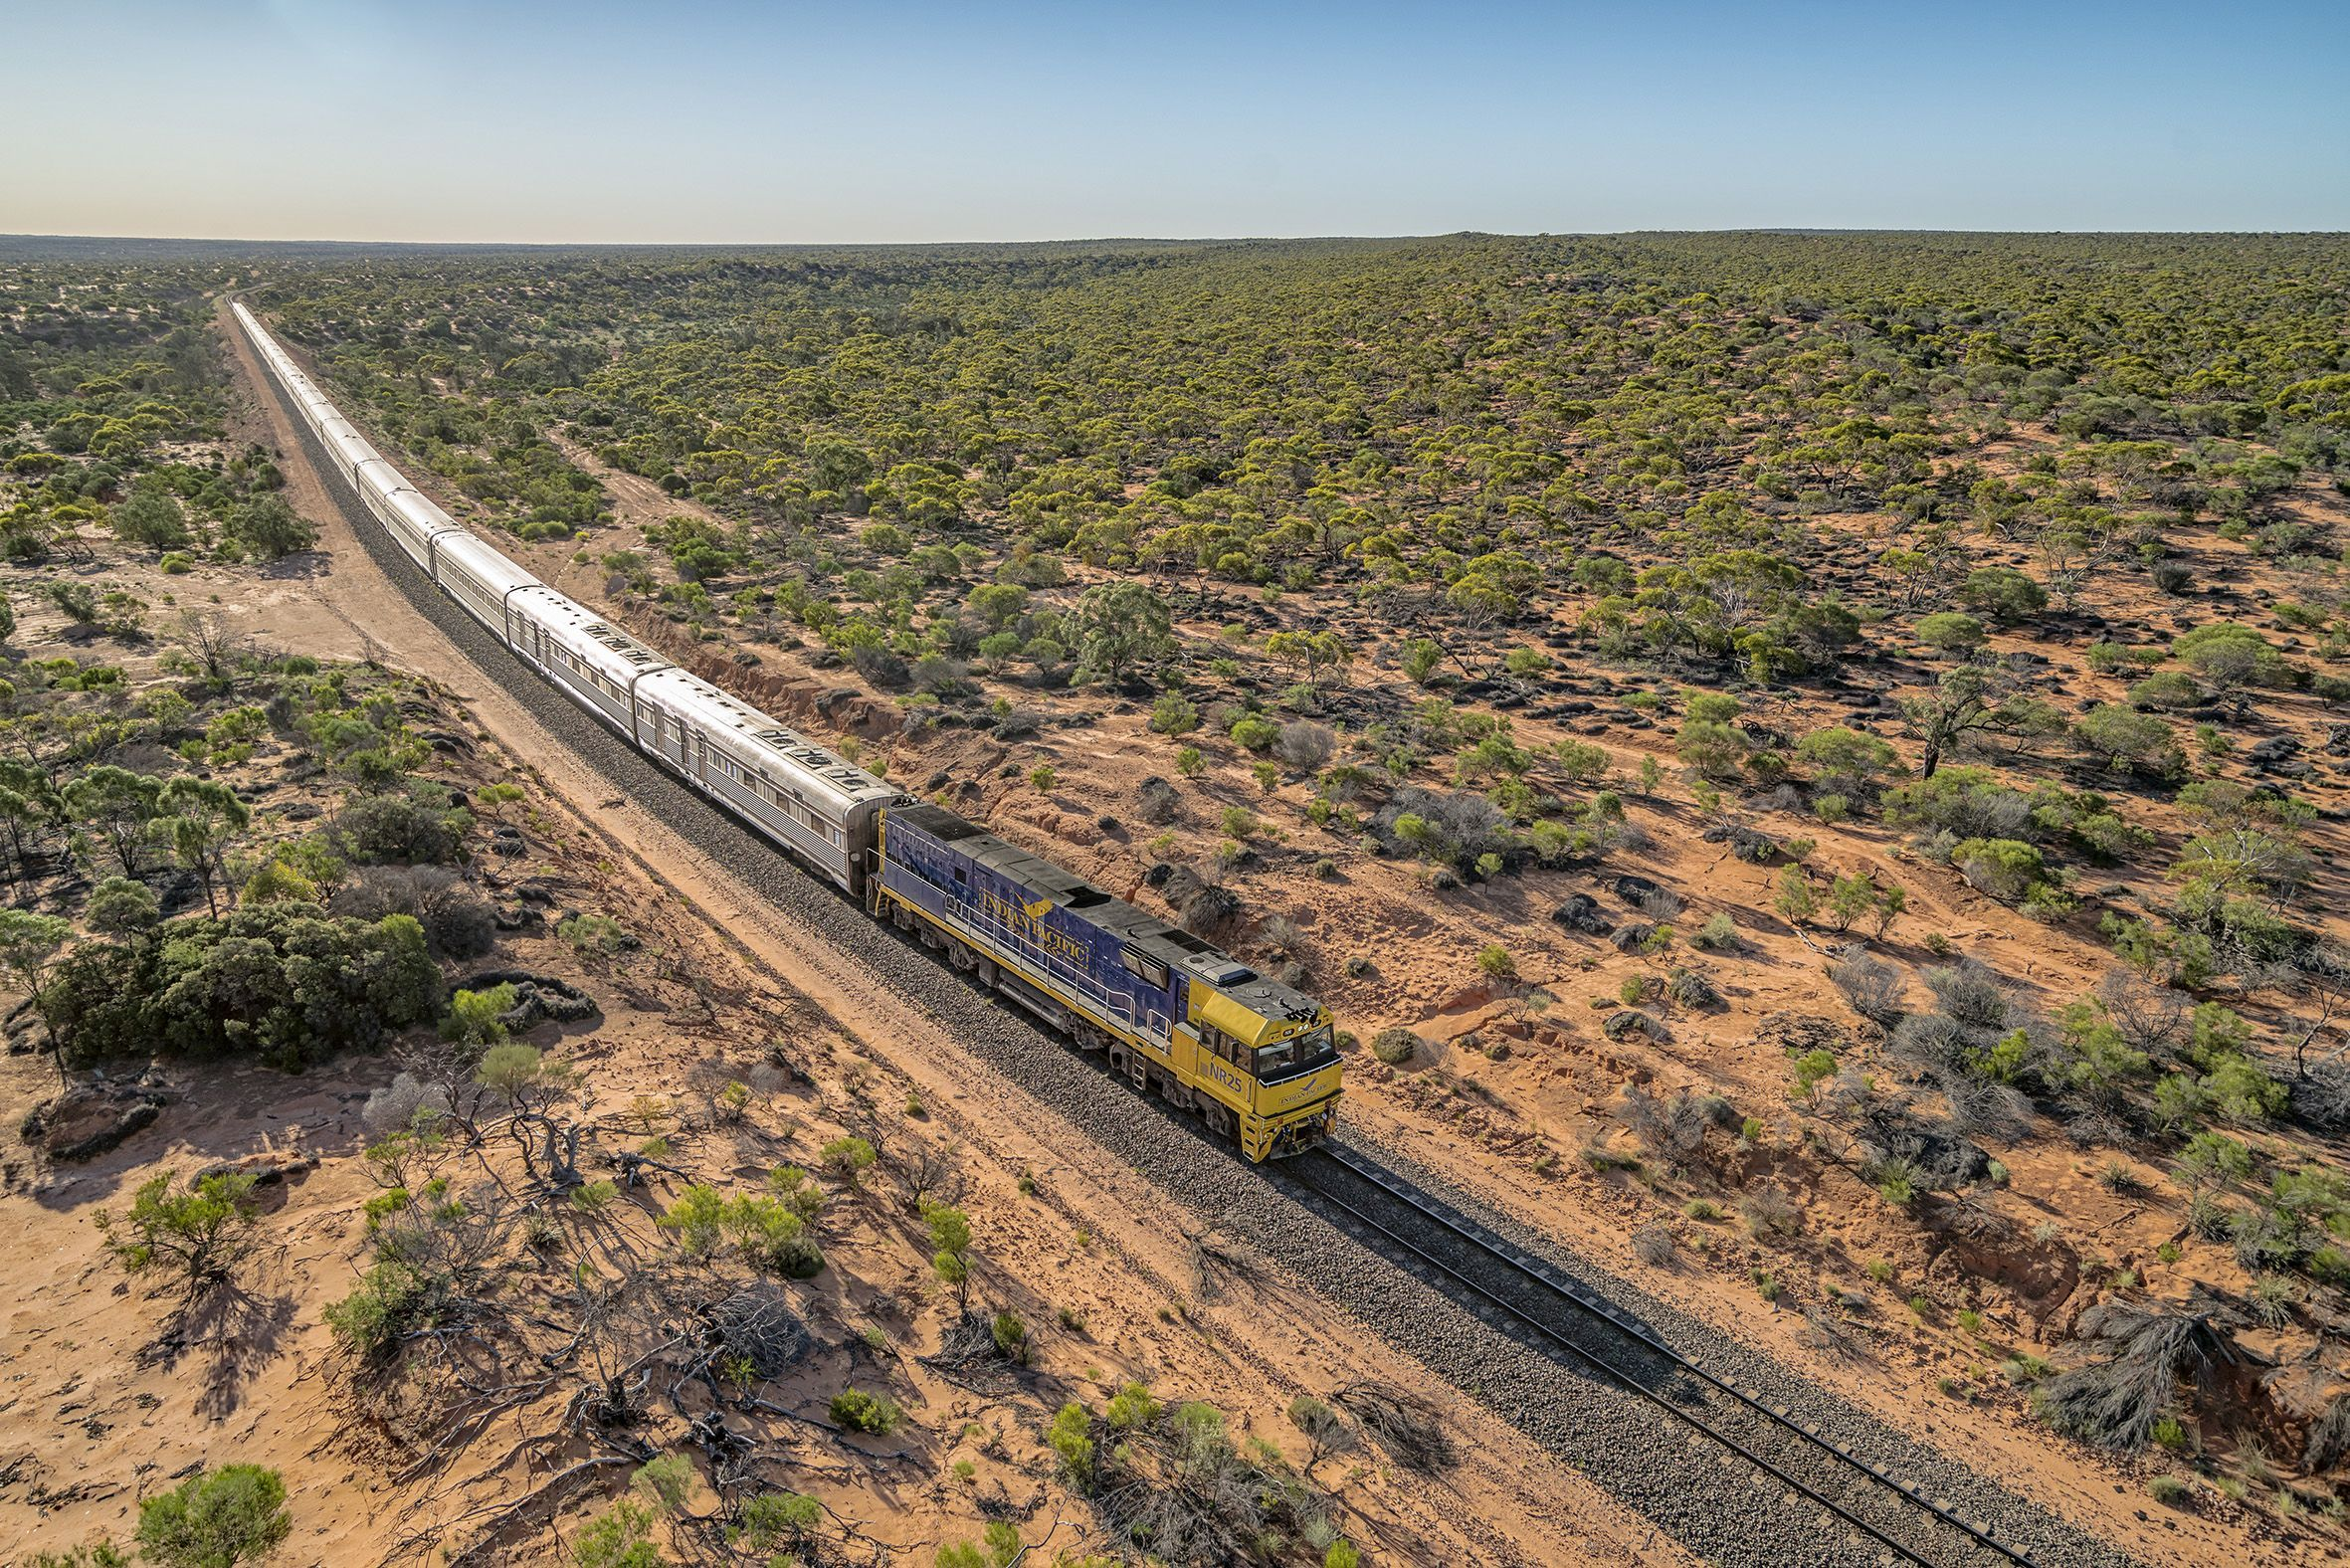 No-Fly Western Australia Coastal Cruise and Indian Pacific Explorer